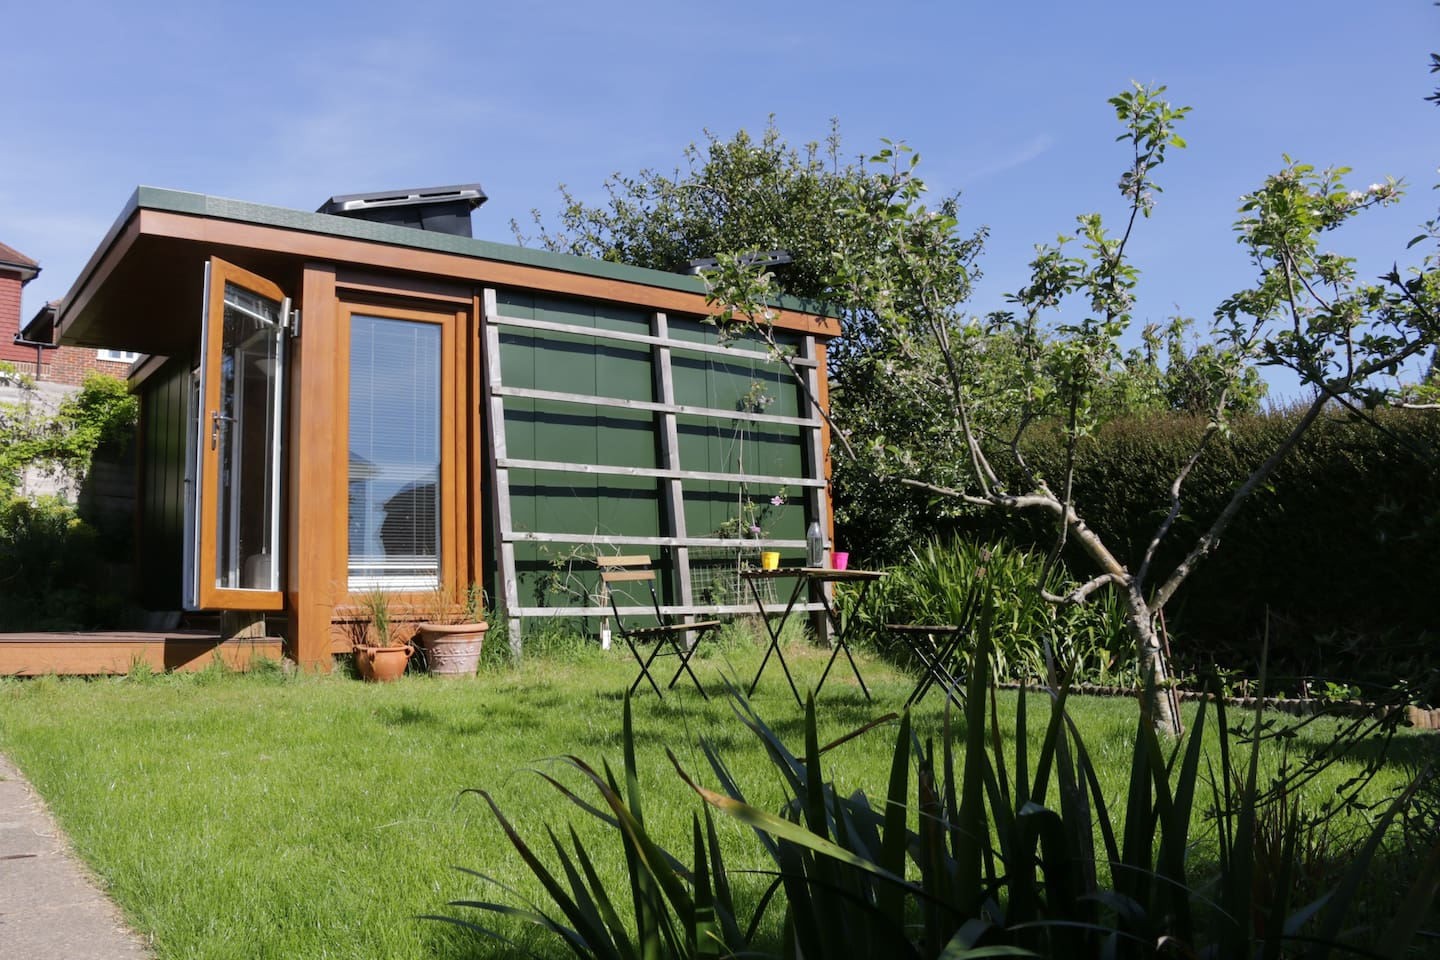 The cabin in its own private garden